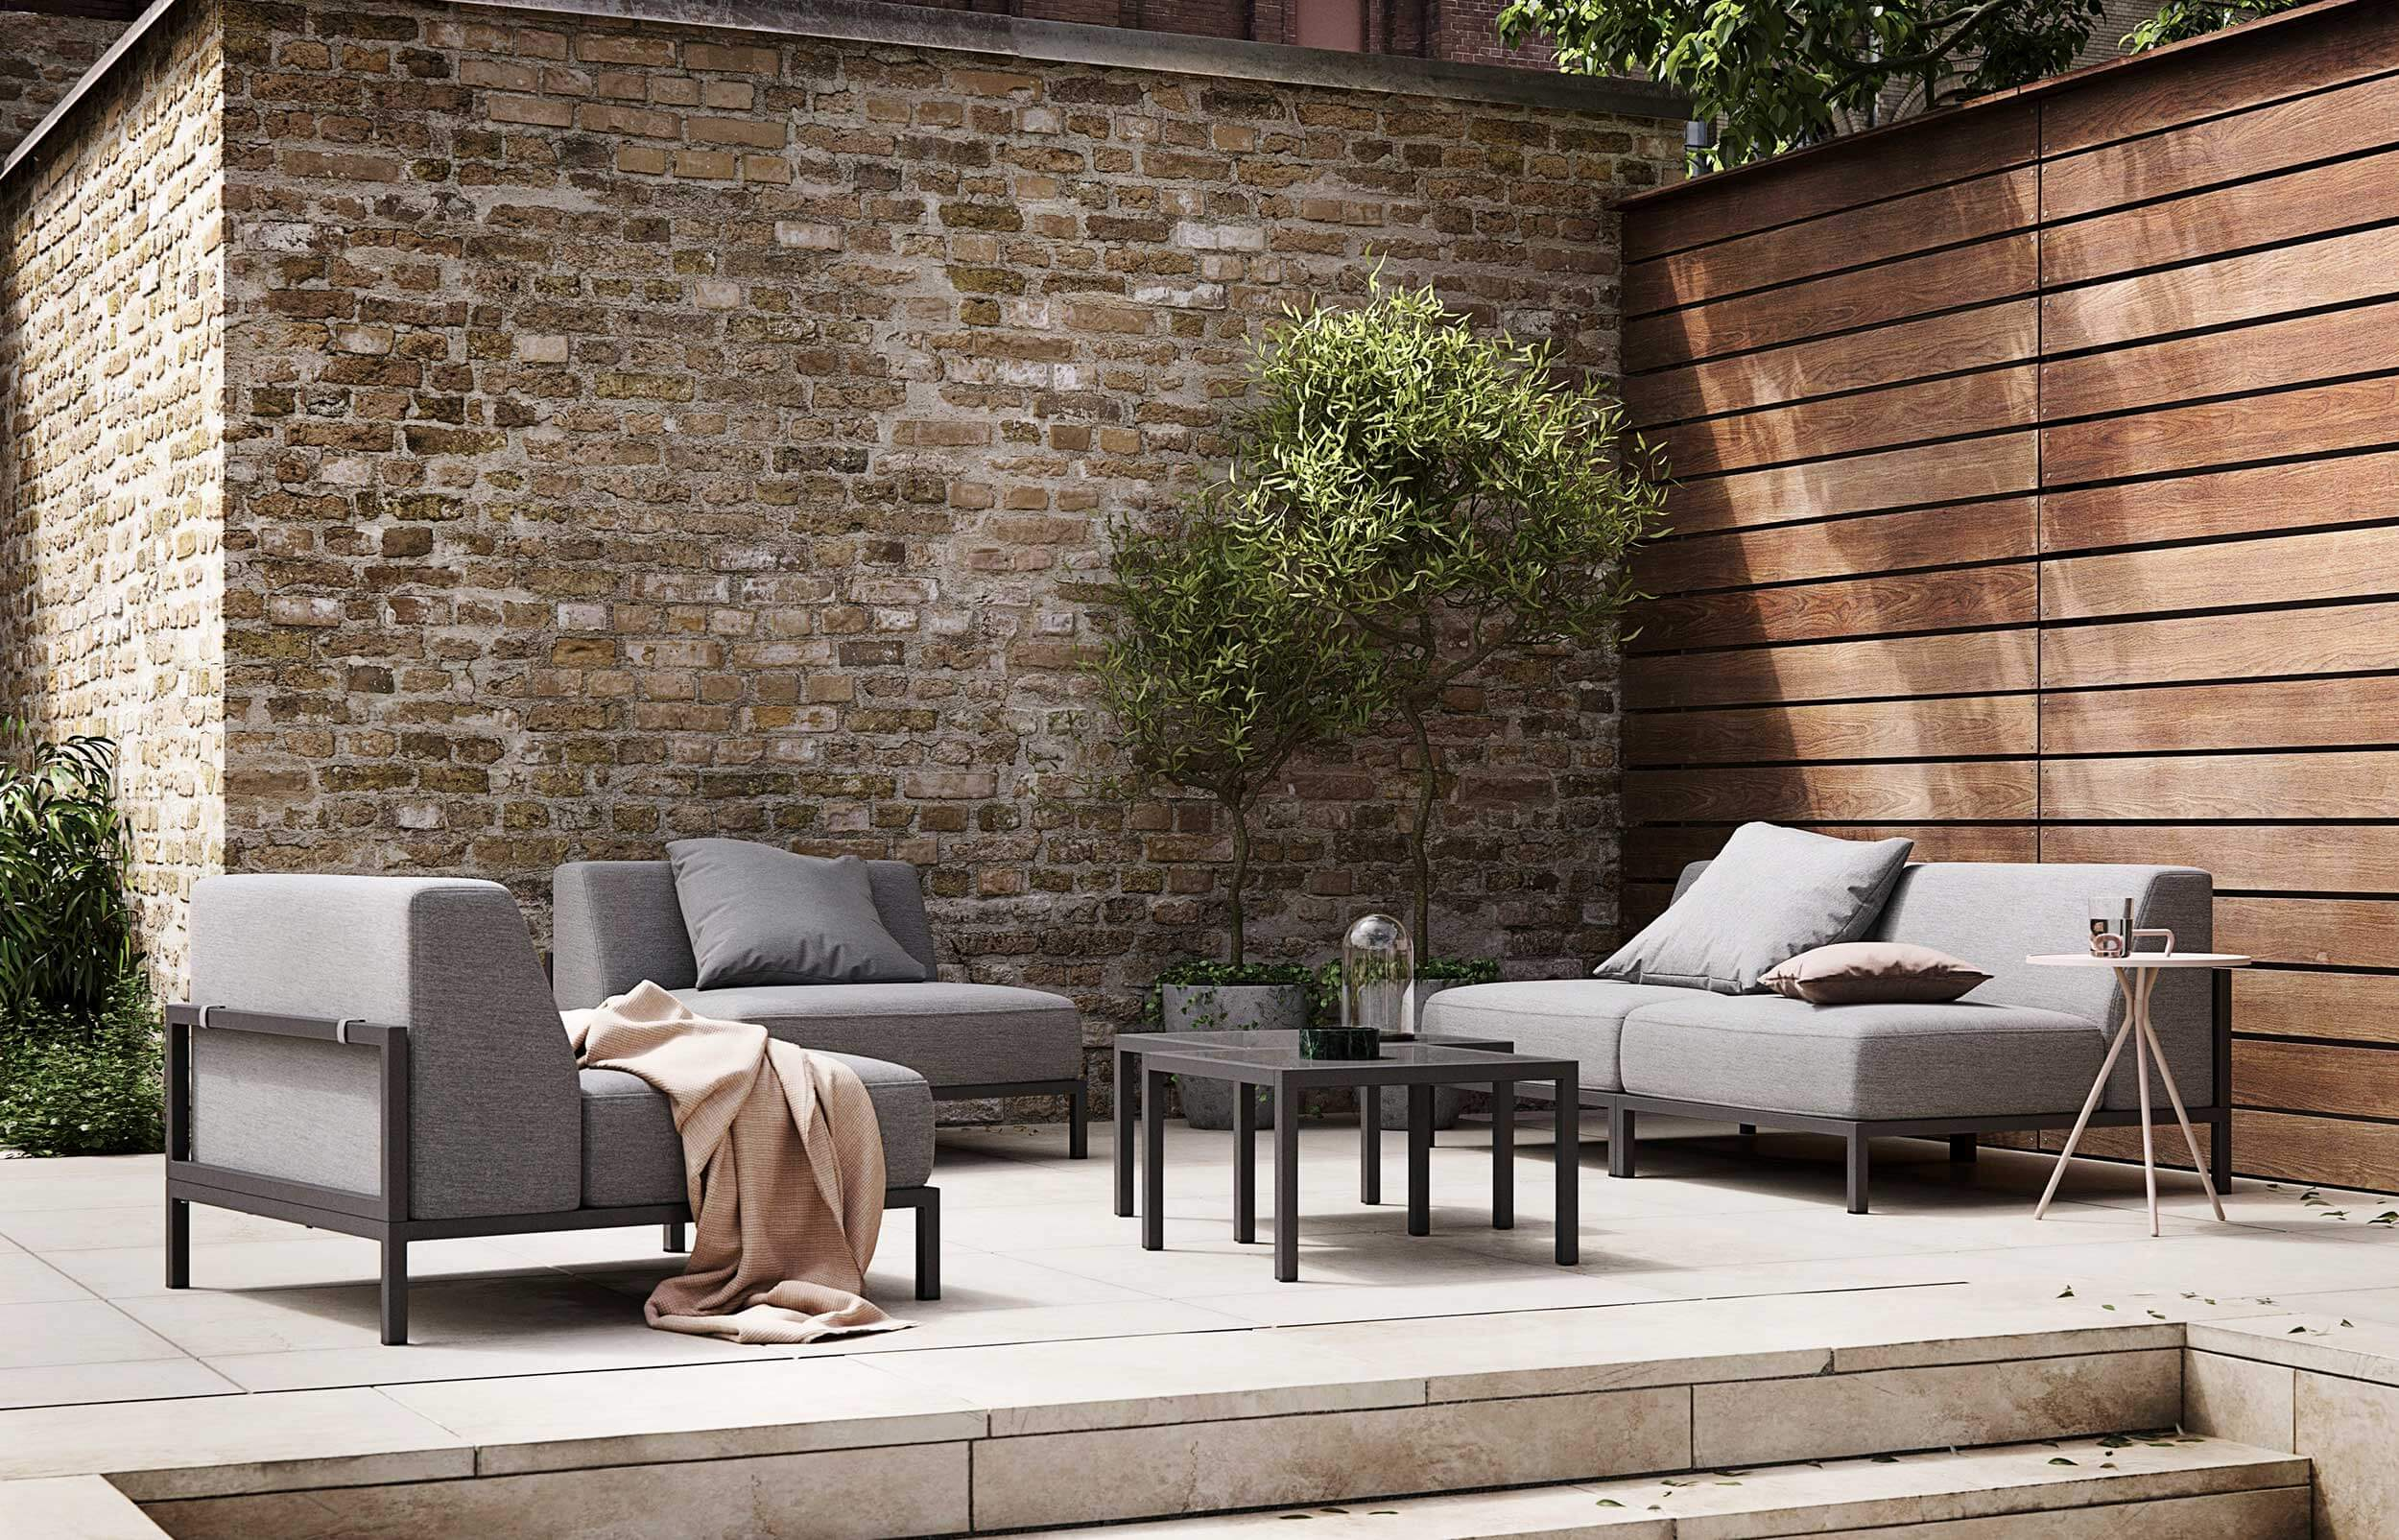 BoConcept's Rome garden sofa system in walled terrace garden with plants and trees